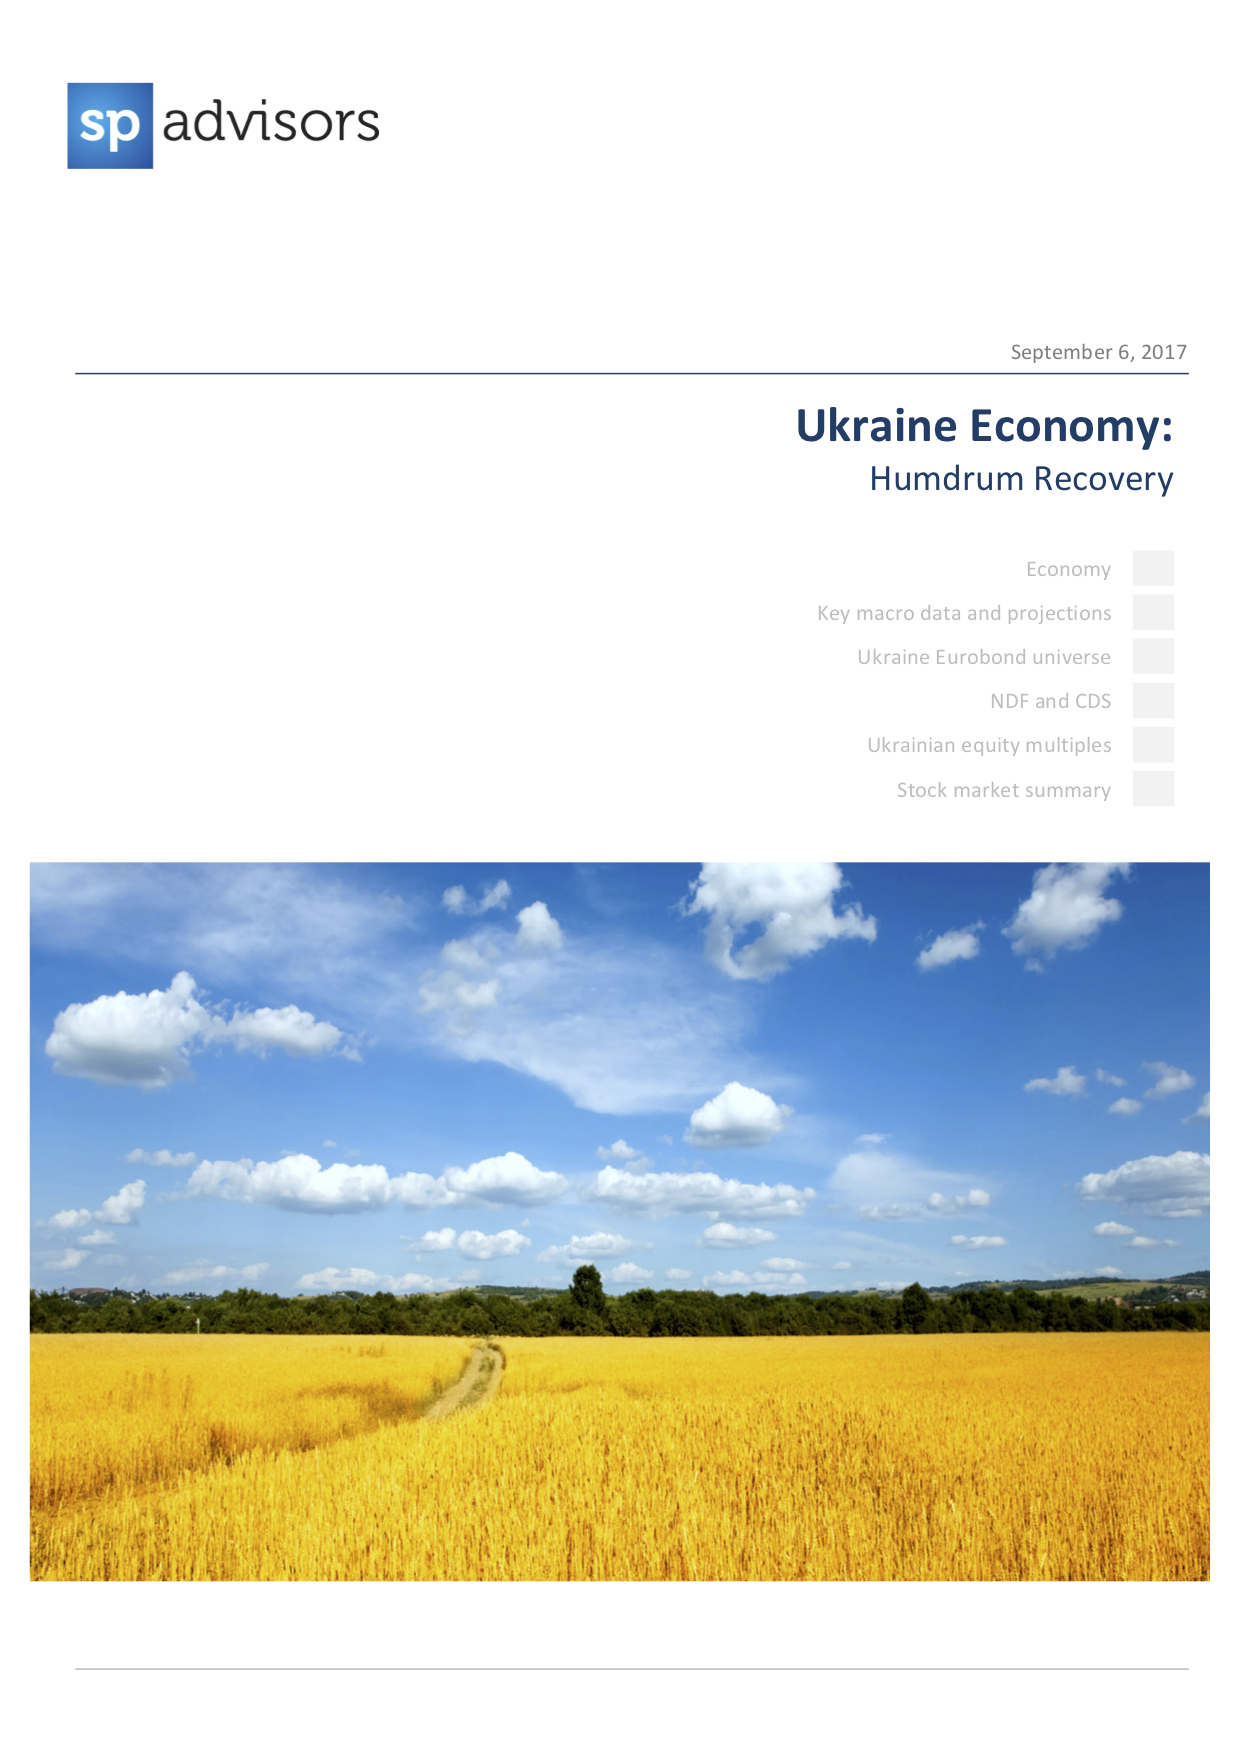 Ukraine Economy: Humdrum Recovery. September 6, 2017